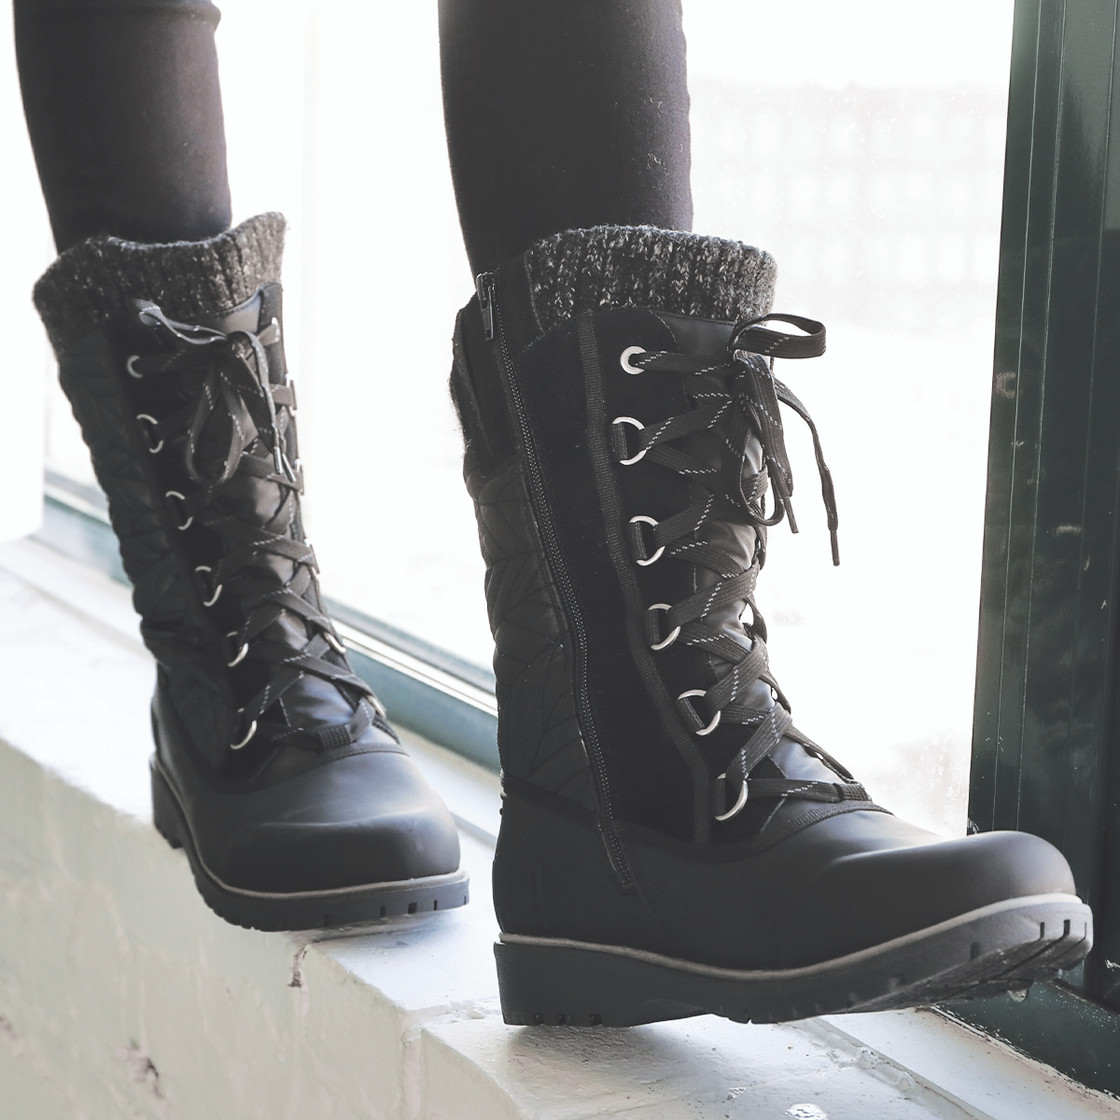 Our Best Boots for Harsh Winter Weather